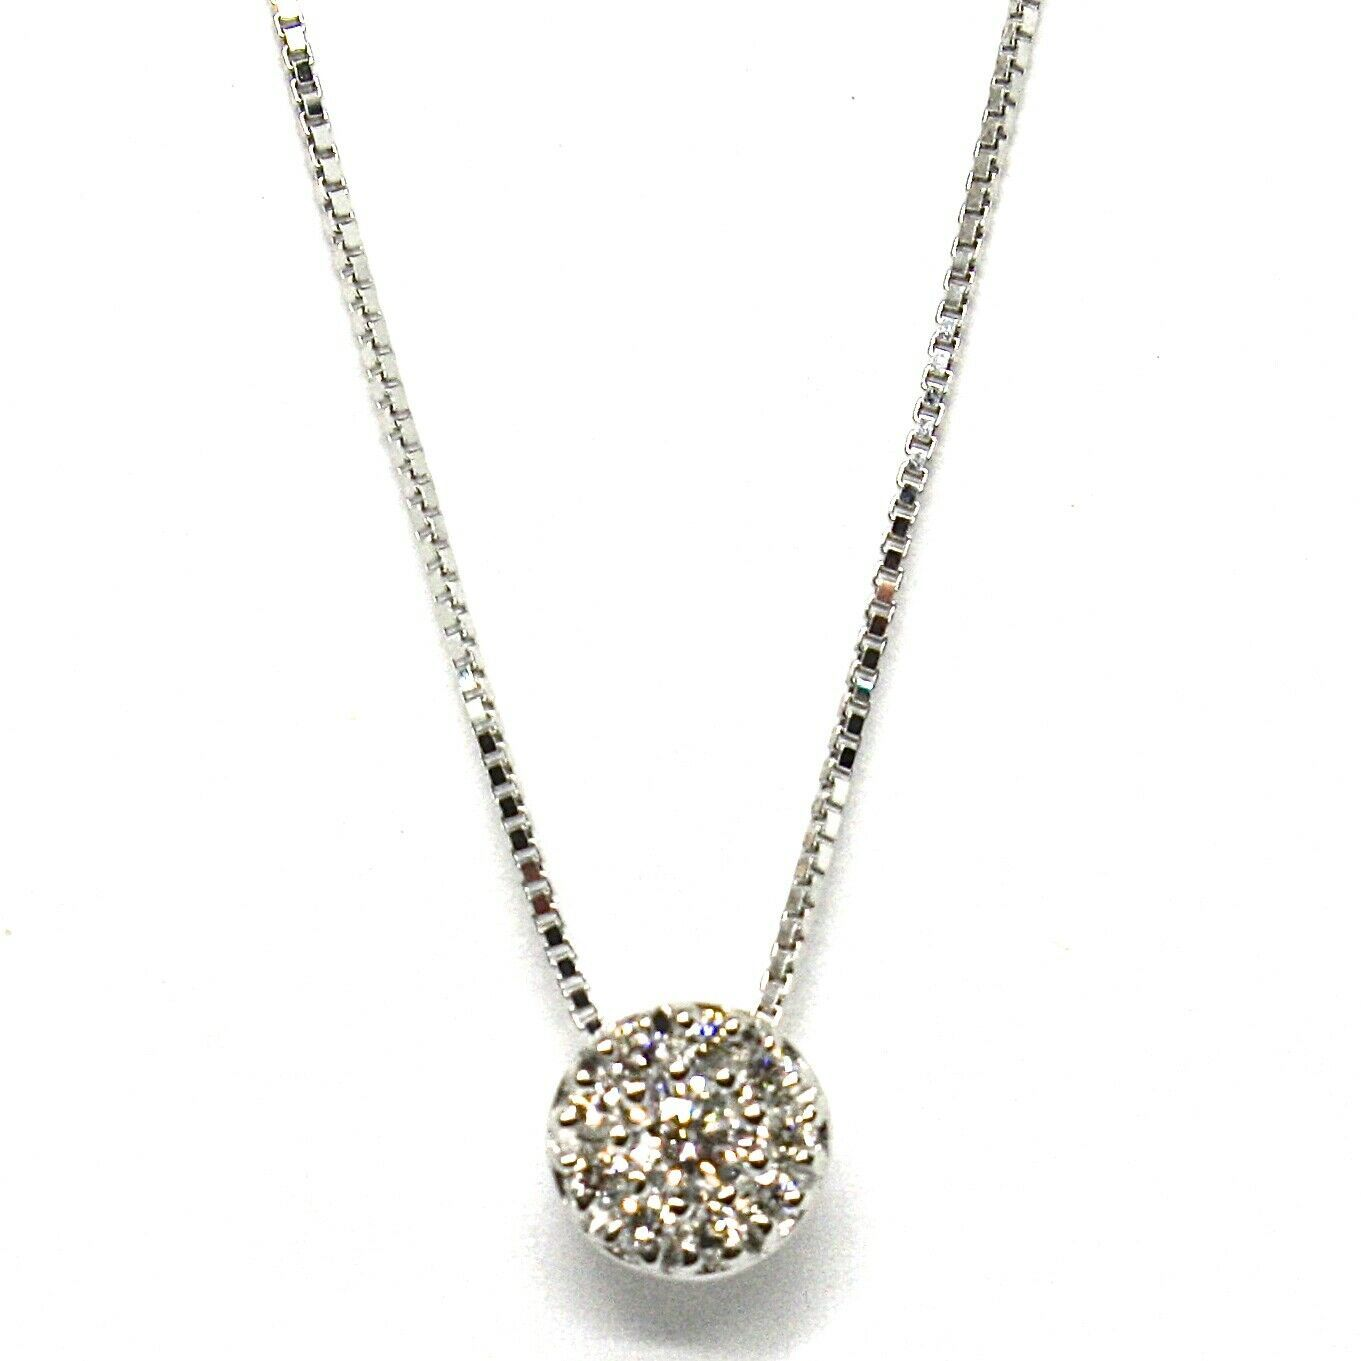 18K WHITE GOLD NECKLACE CENTRAL FRAME DIAMONDS .11 FLOWER PENDANT VENETIAN CHAIN